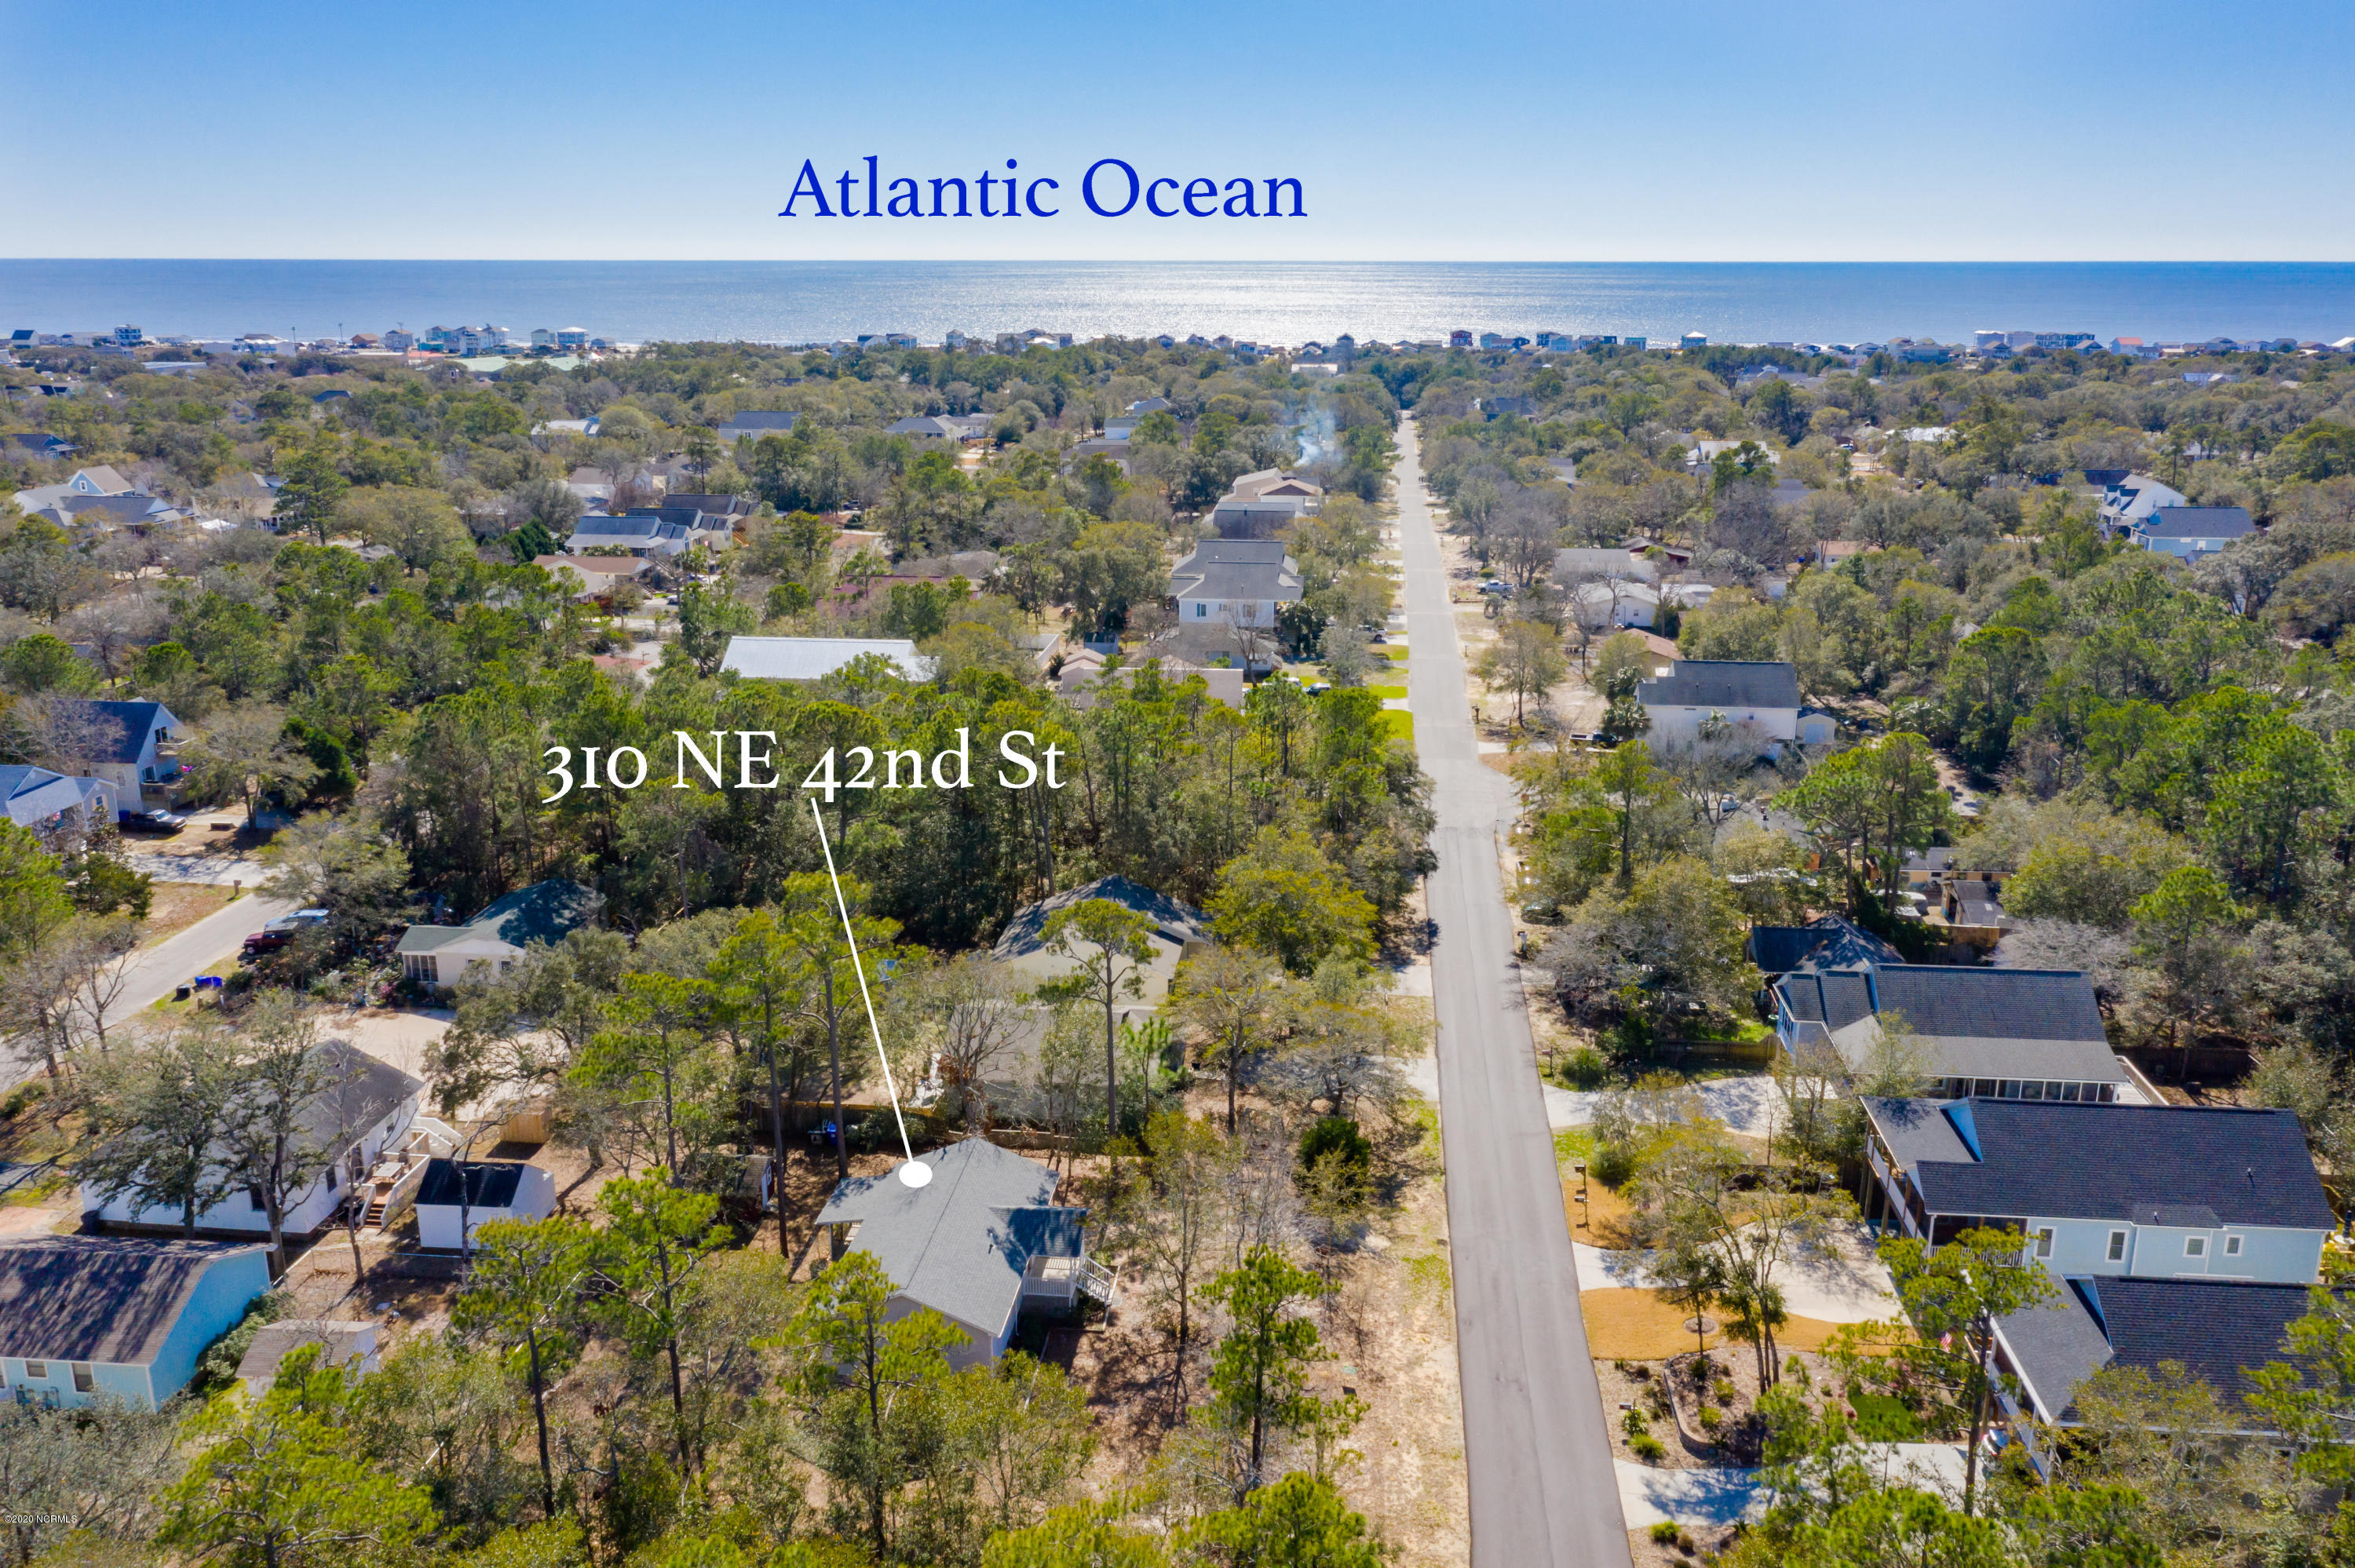 310 NE 42nd Street Oak Island, NC 28465